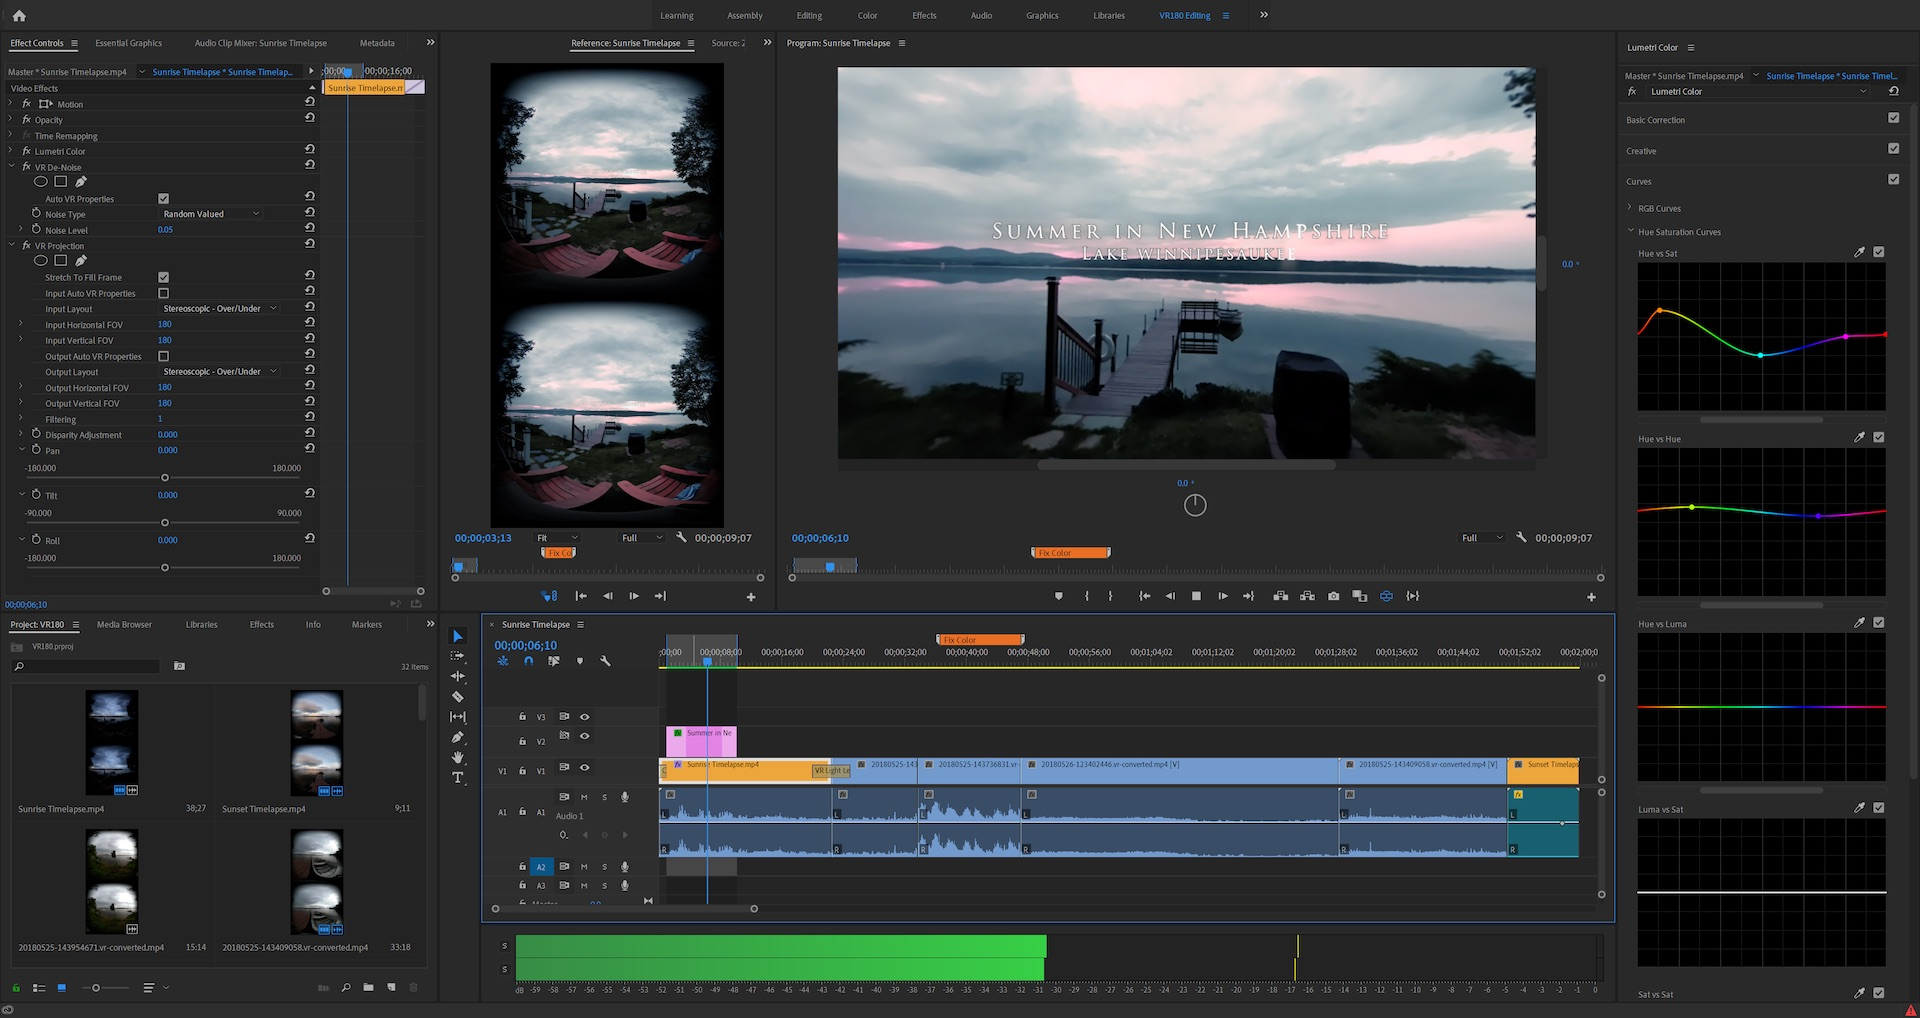 VR 180 makes the jump into immersive storytelling more manageable — and Premiere Pro can help with new support for VR 180, including optimized ingest, editorial, effects, and output in the Google VR180 format for YouTube or other platforms. —Adobe